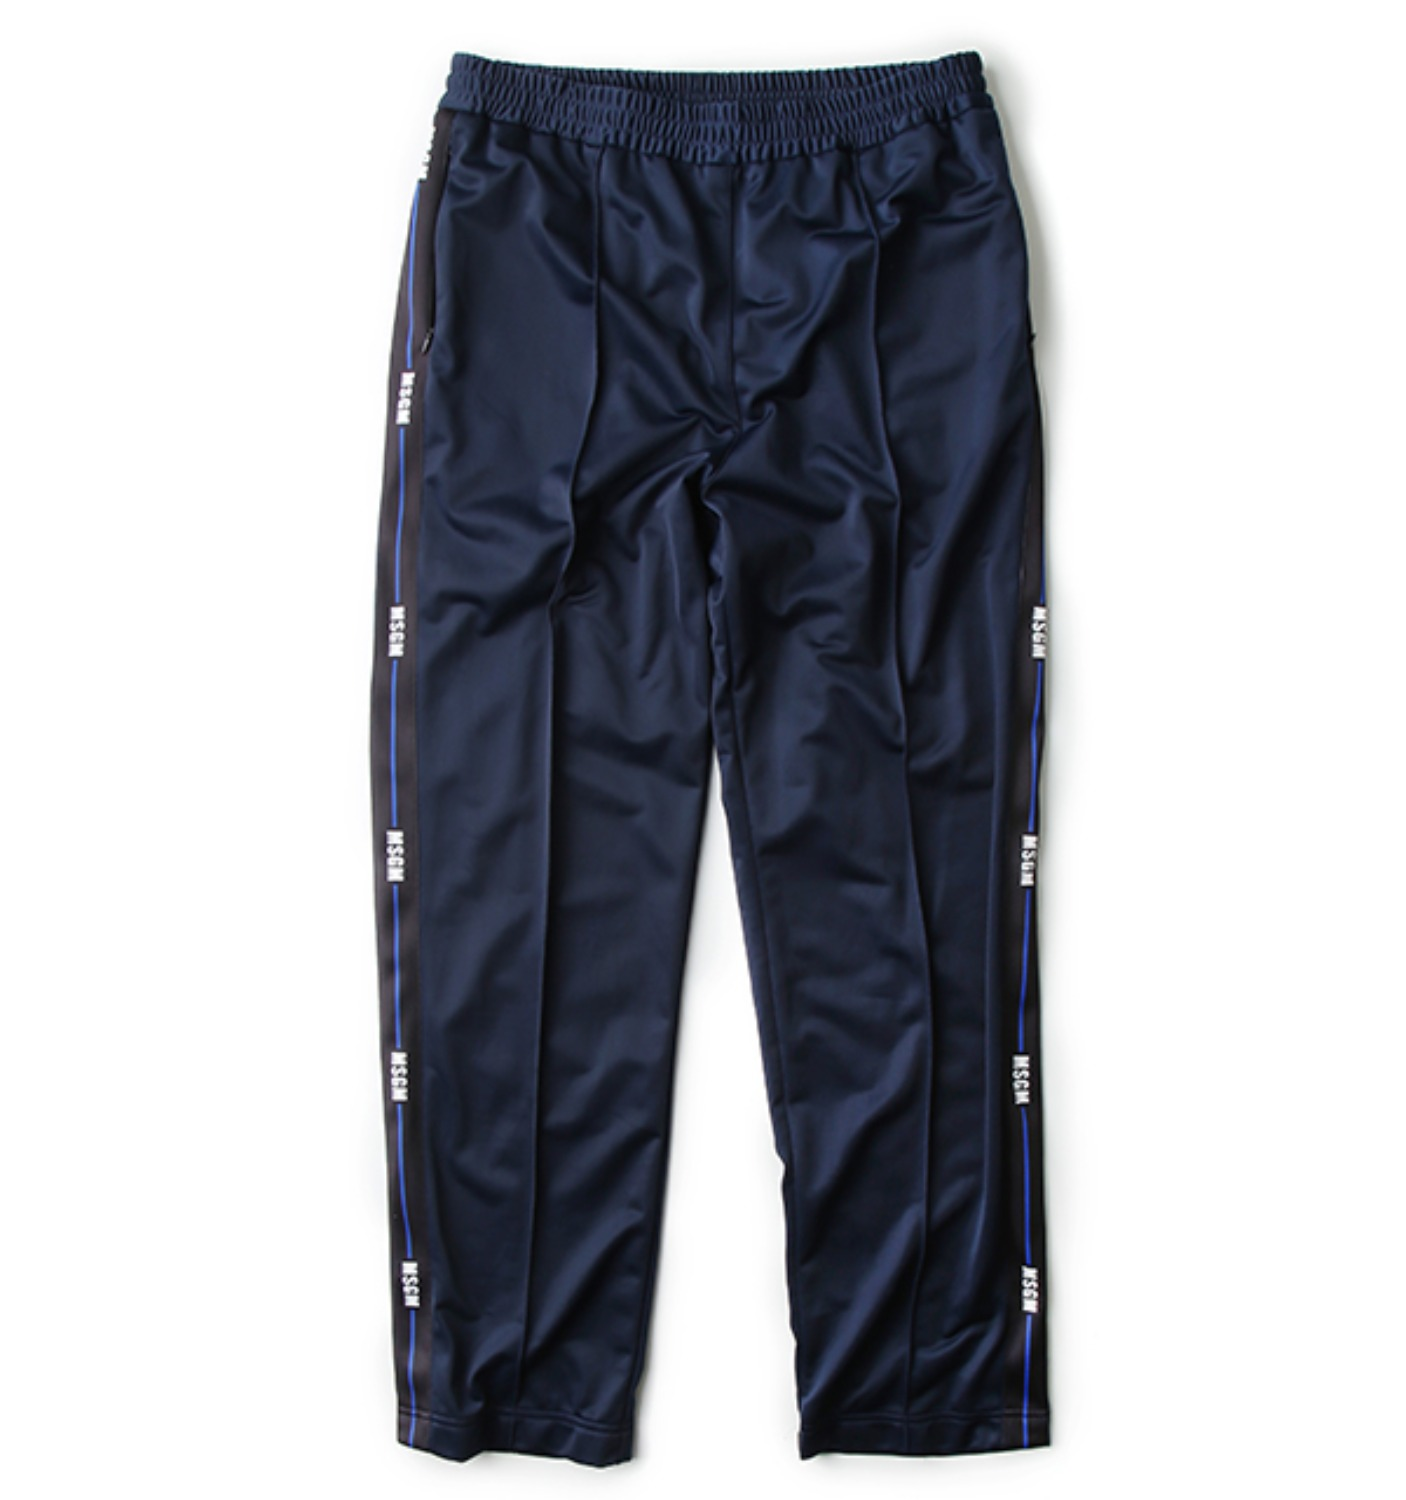 MSGM SIDE TAPE PANTS NAVY(2340MP13Y)